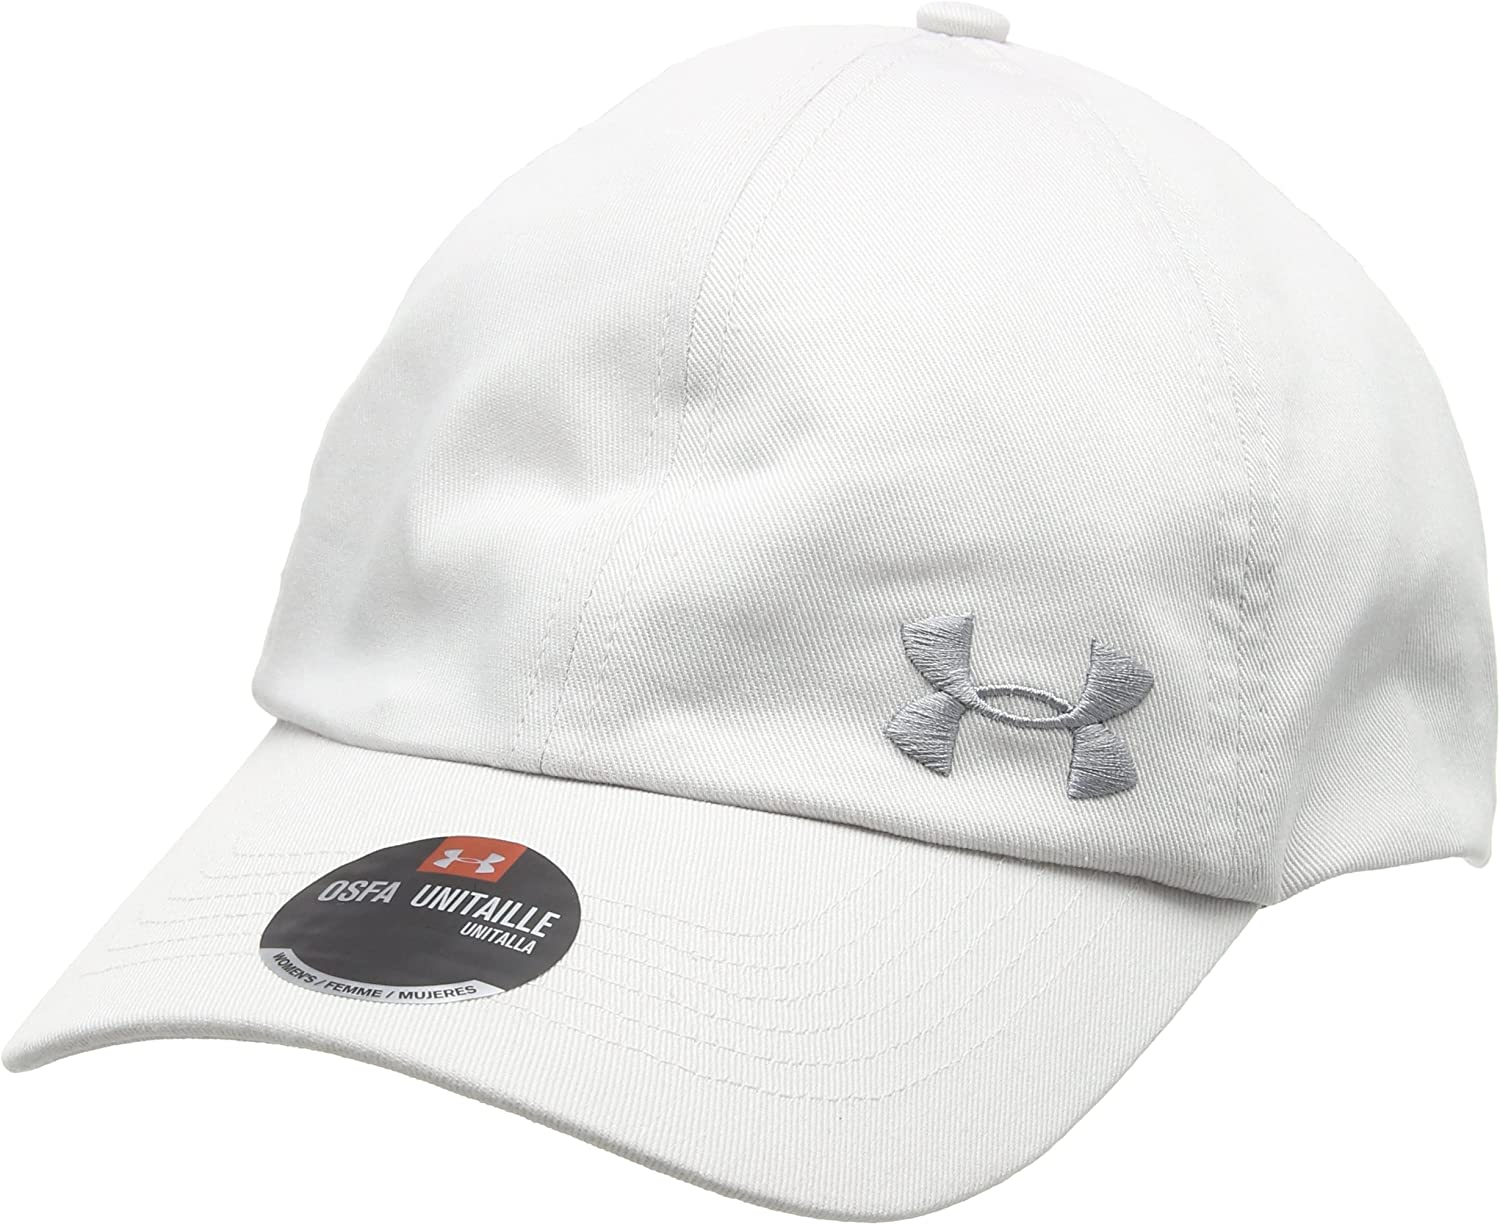 Under Armour - Gorra Deportiva para Mujer, Mujer, Color Glg ...